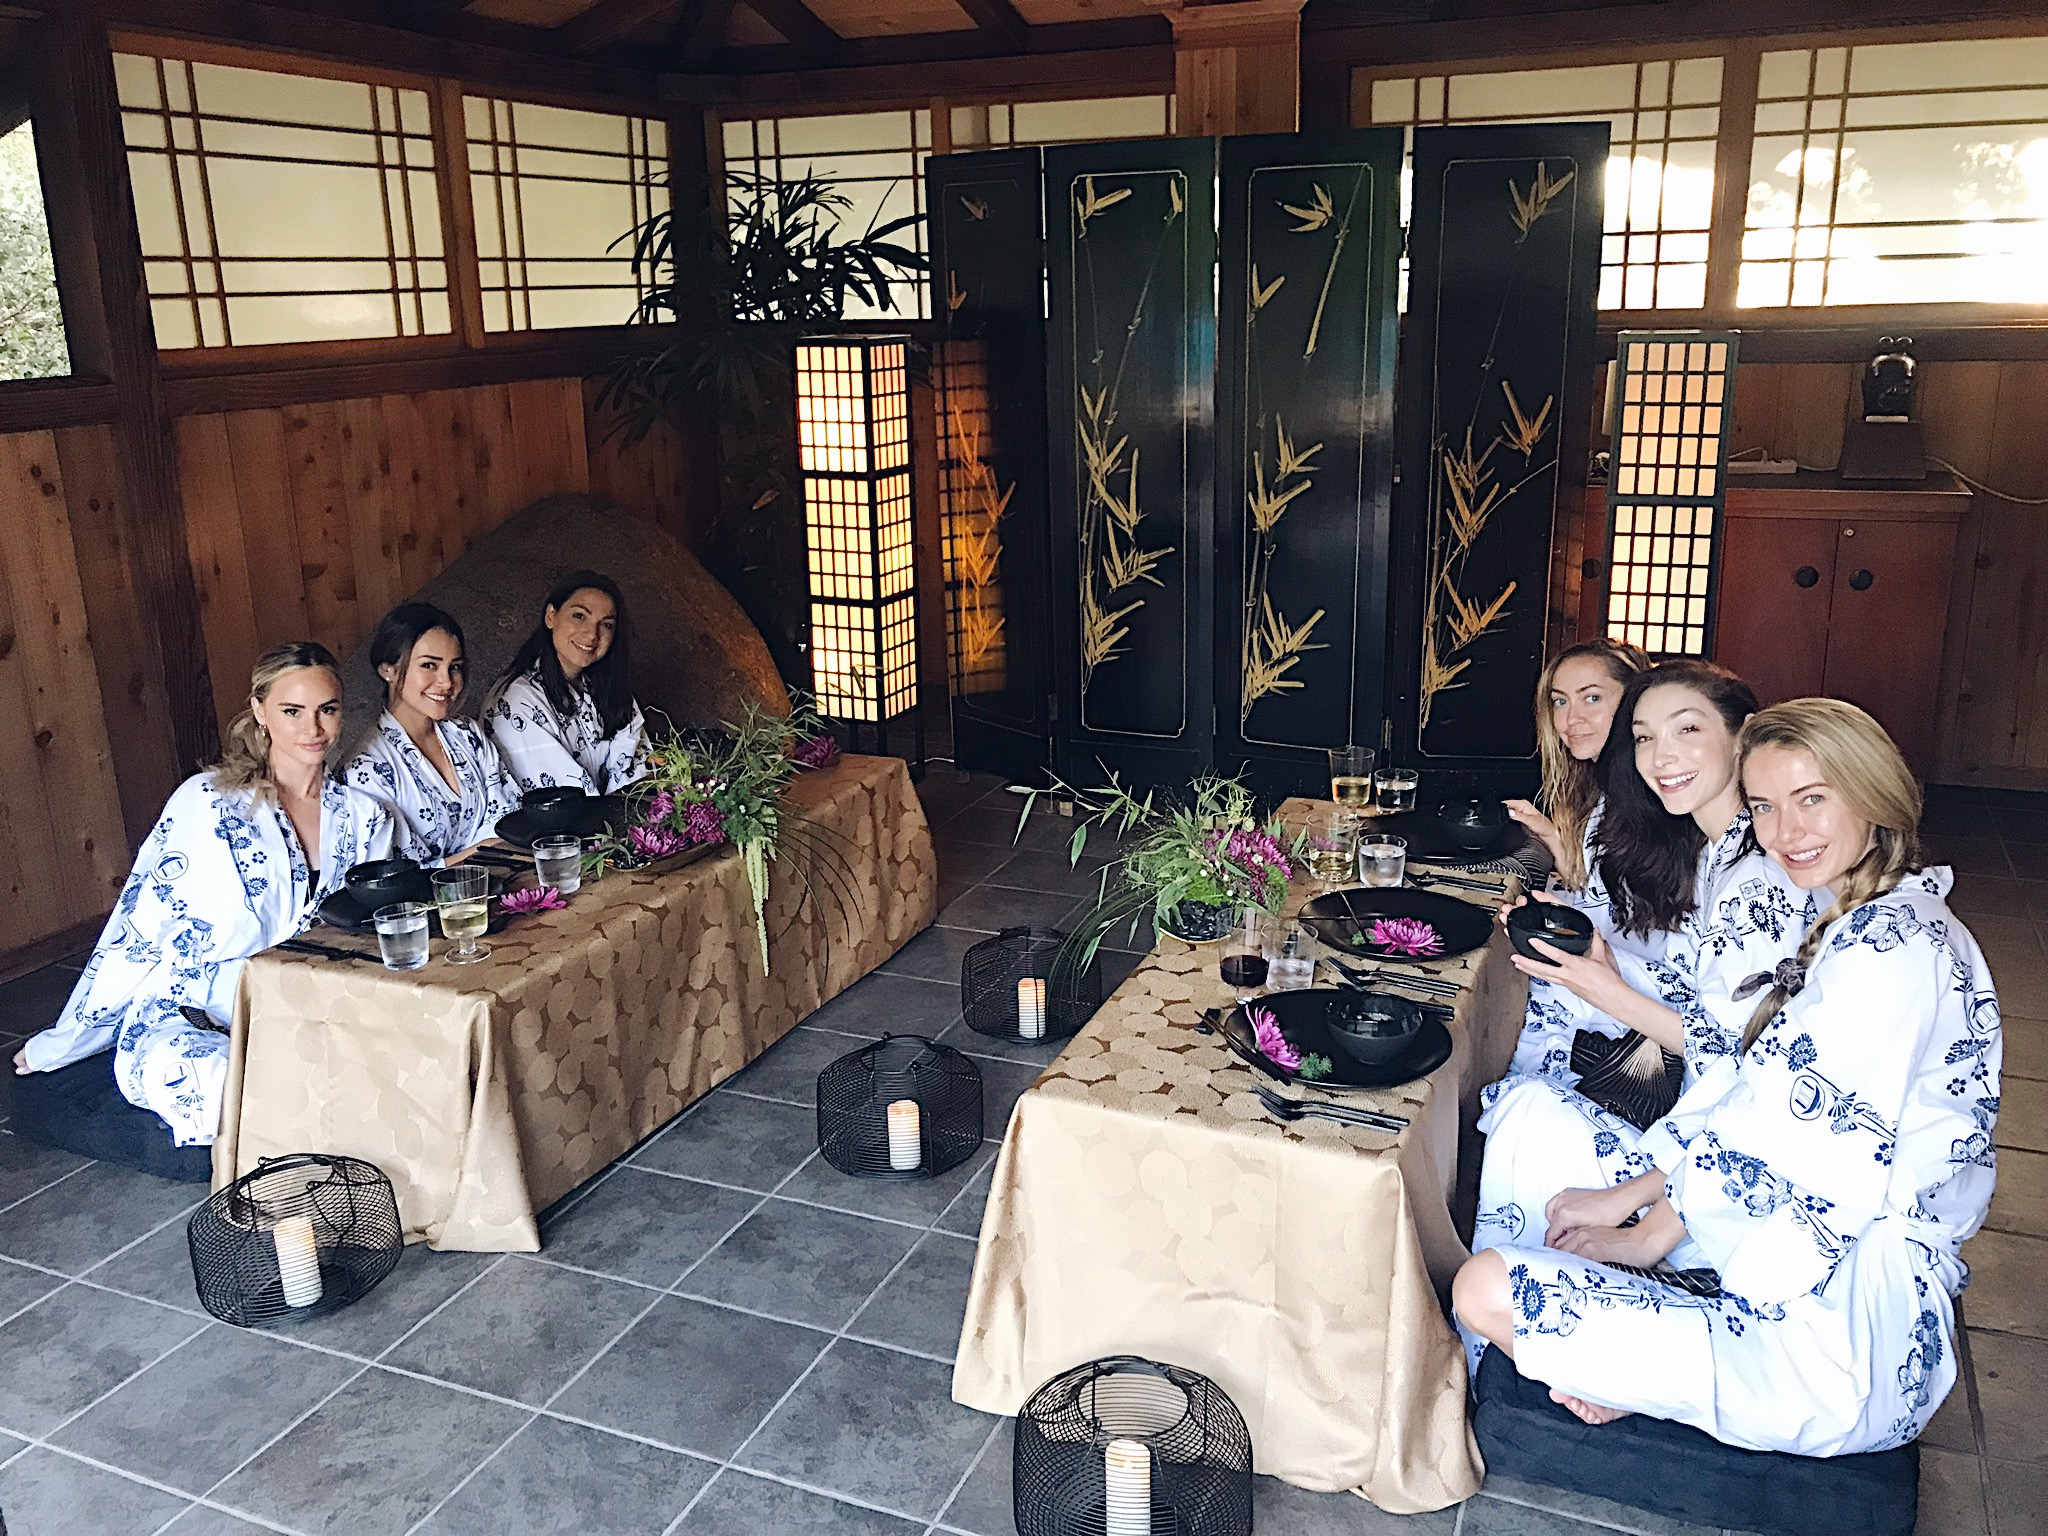 Dining in style at Golden Door FROM LEFT: Amanda Stanton, Danielle Lombard, Sarah Boyd, Brandi Cyrus, Meryl Davis, and Olivia Jordan